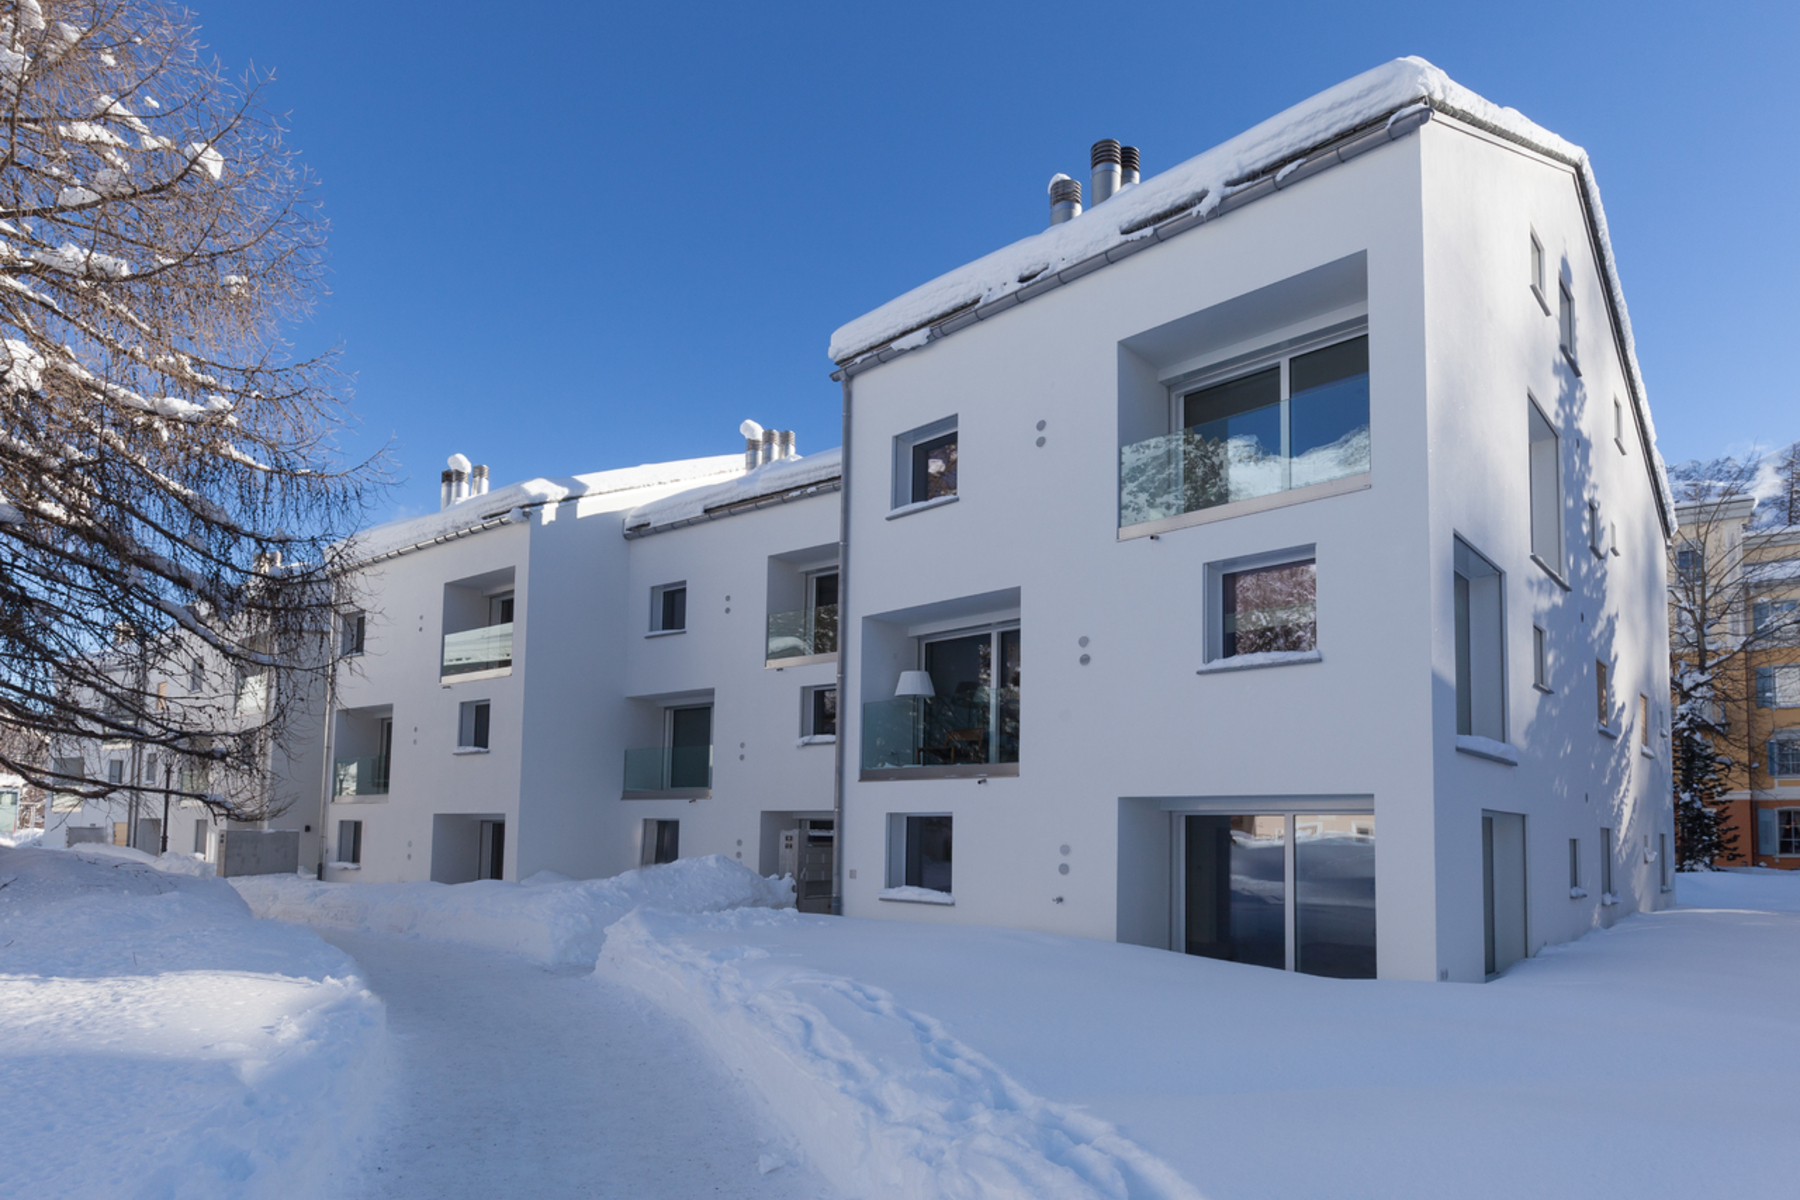 公寓 為 出售 在 Modern & bright 4.5-room duplex apartment Sils Maria Other Switzerland, 瑞士的其他地區, 7514 瑞士